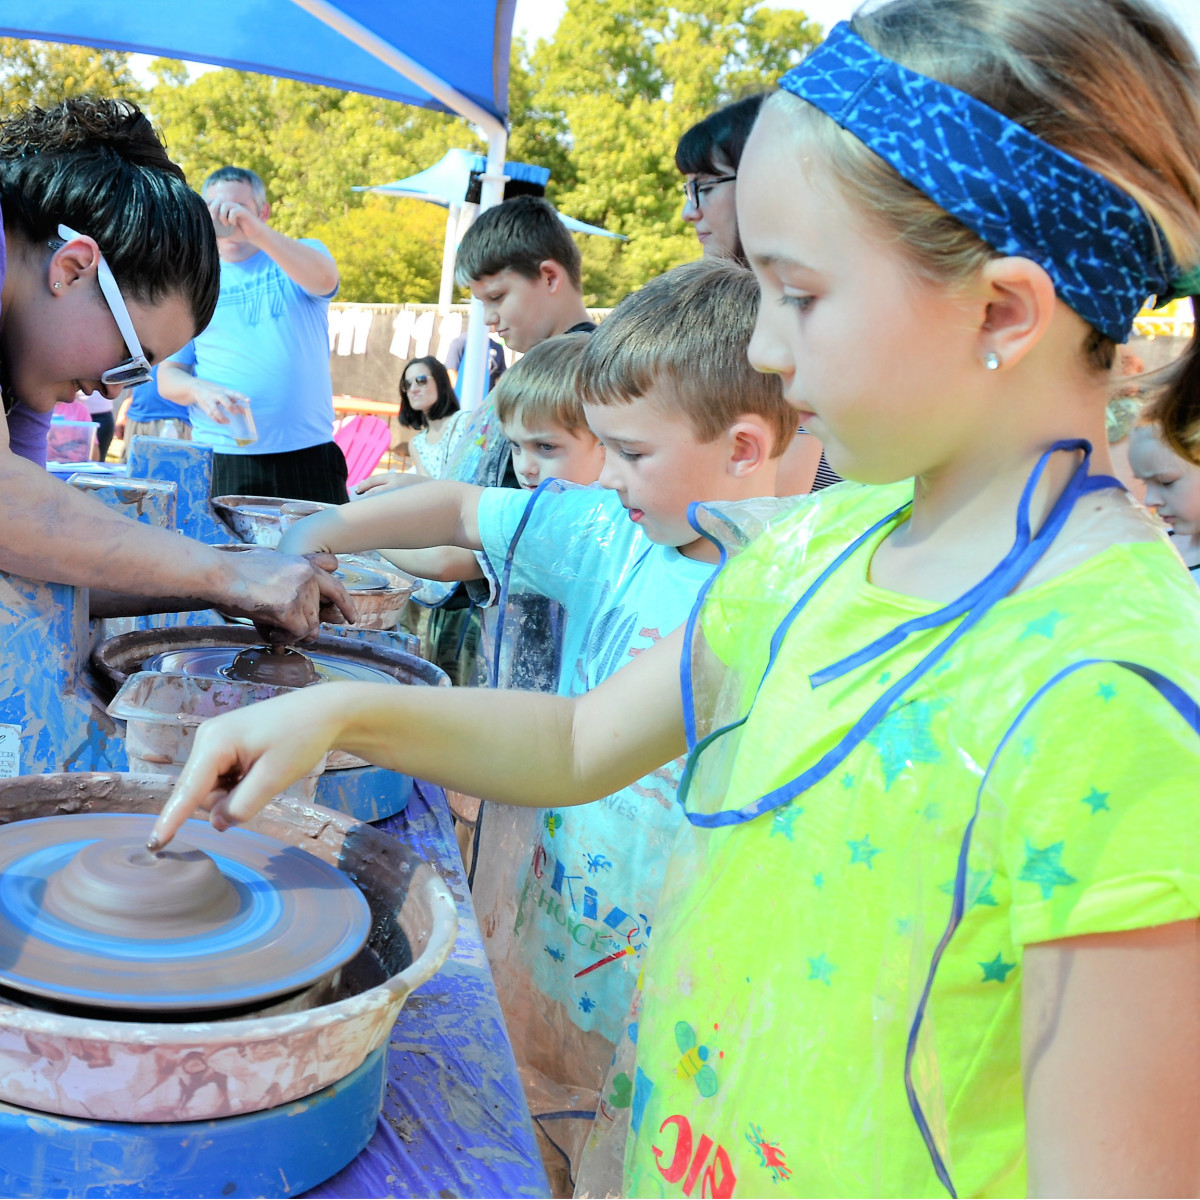 Children making pottery at Cottonwood Art Festival